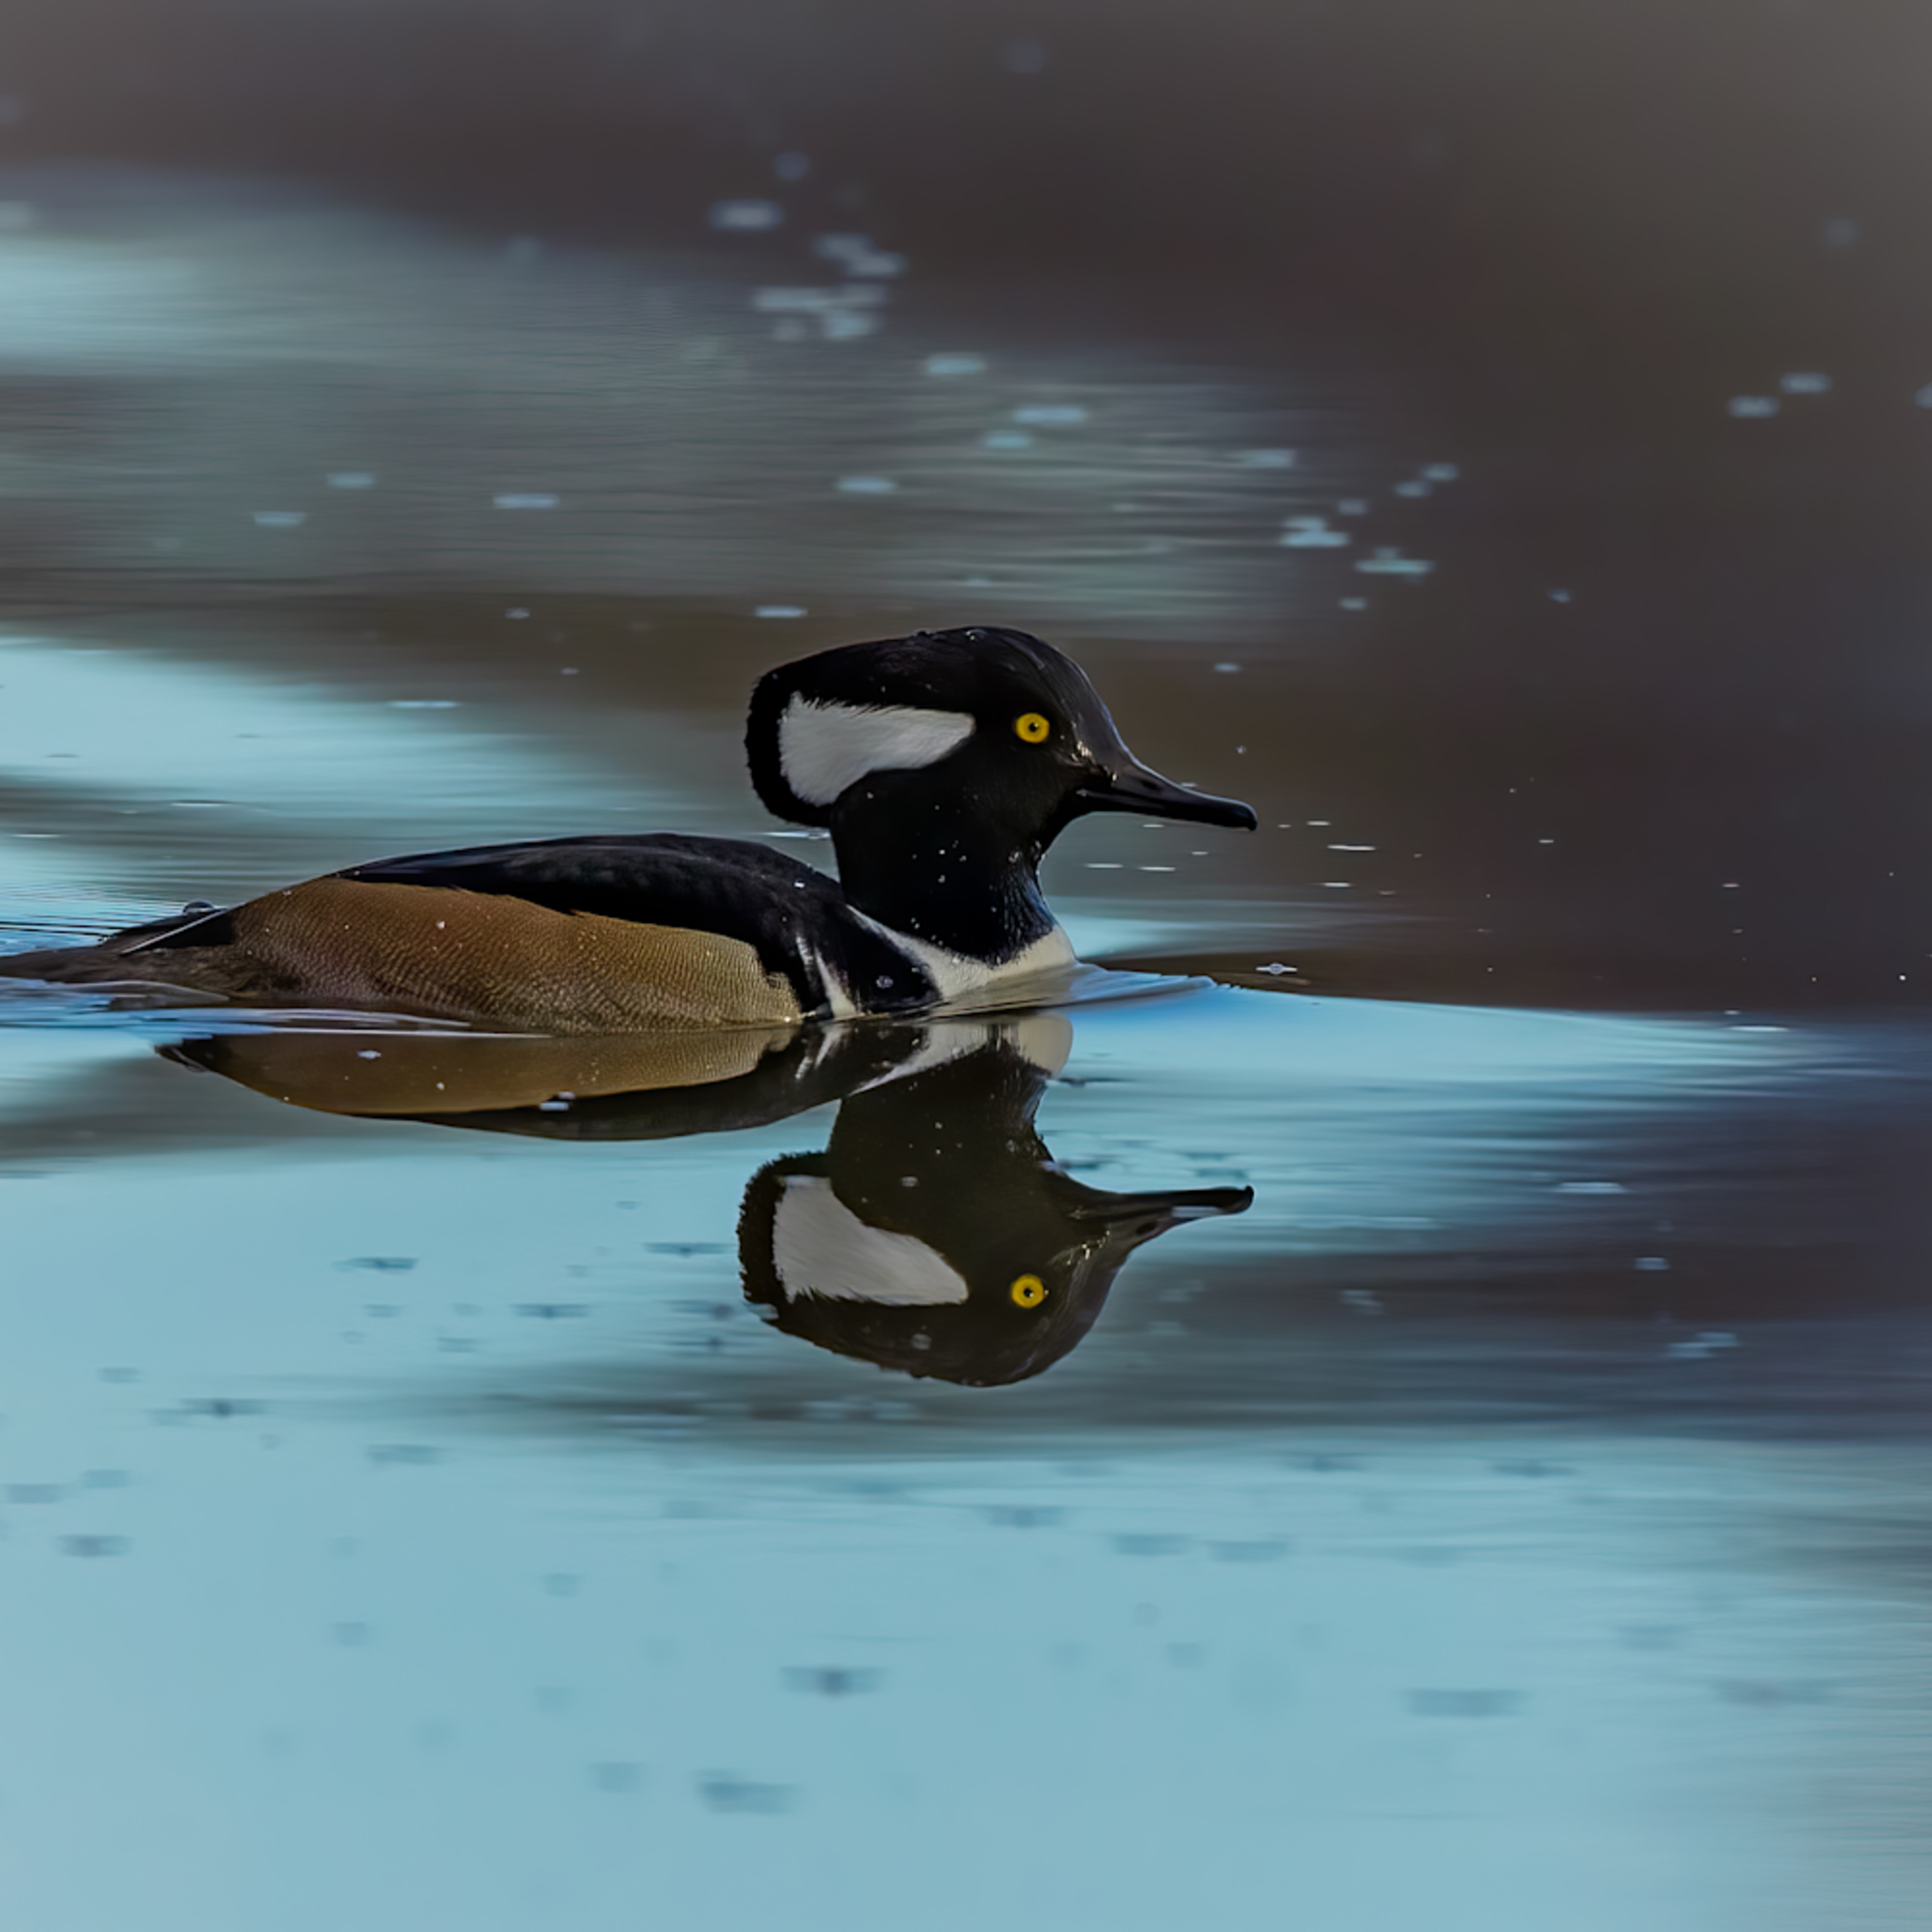 Hooded merganser swimming in blue water with reflection fzbsvz